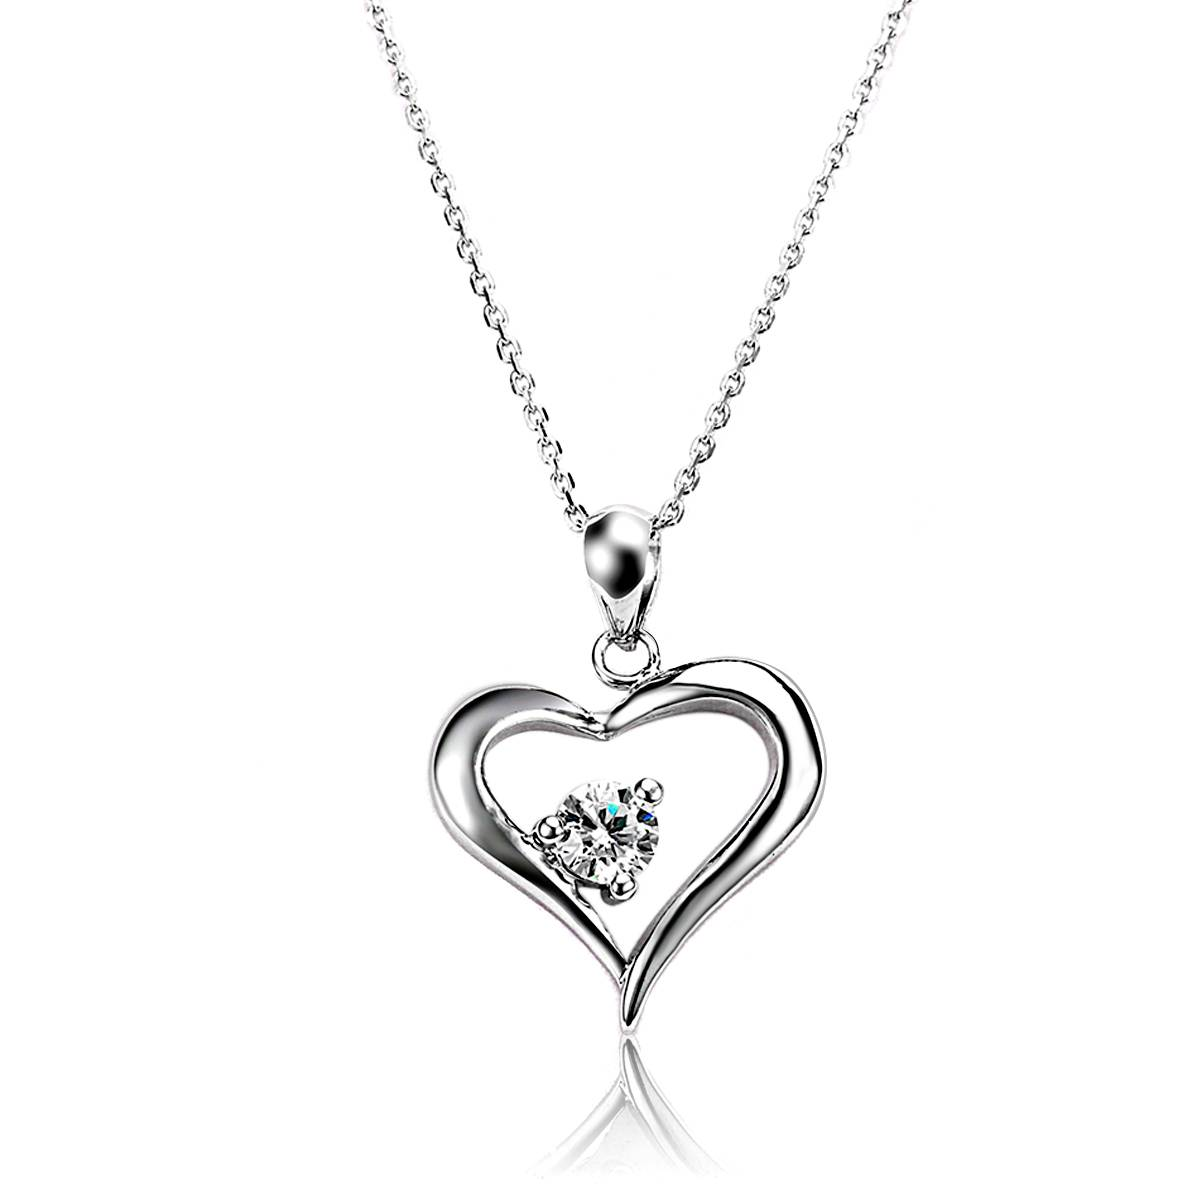 Wholesale 925 Silver Pendant Necklace with Clear White AAA Cubic Ziron Prong Setting Jewelry Pendant